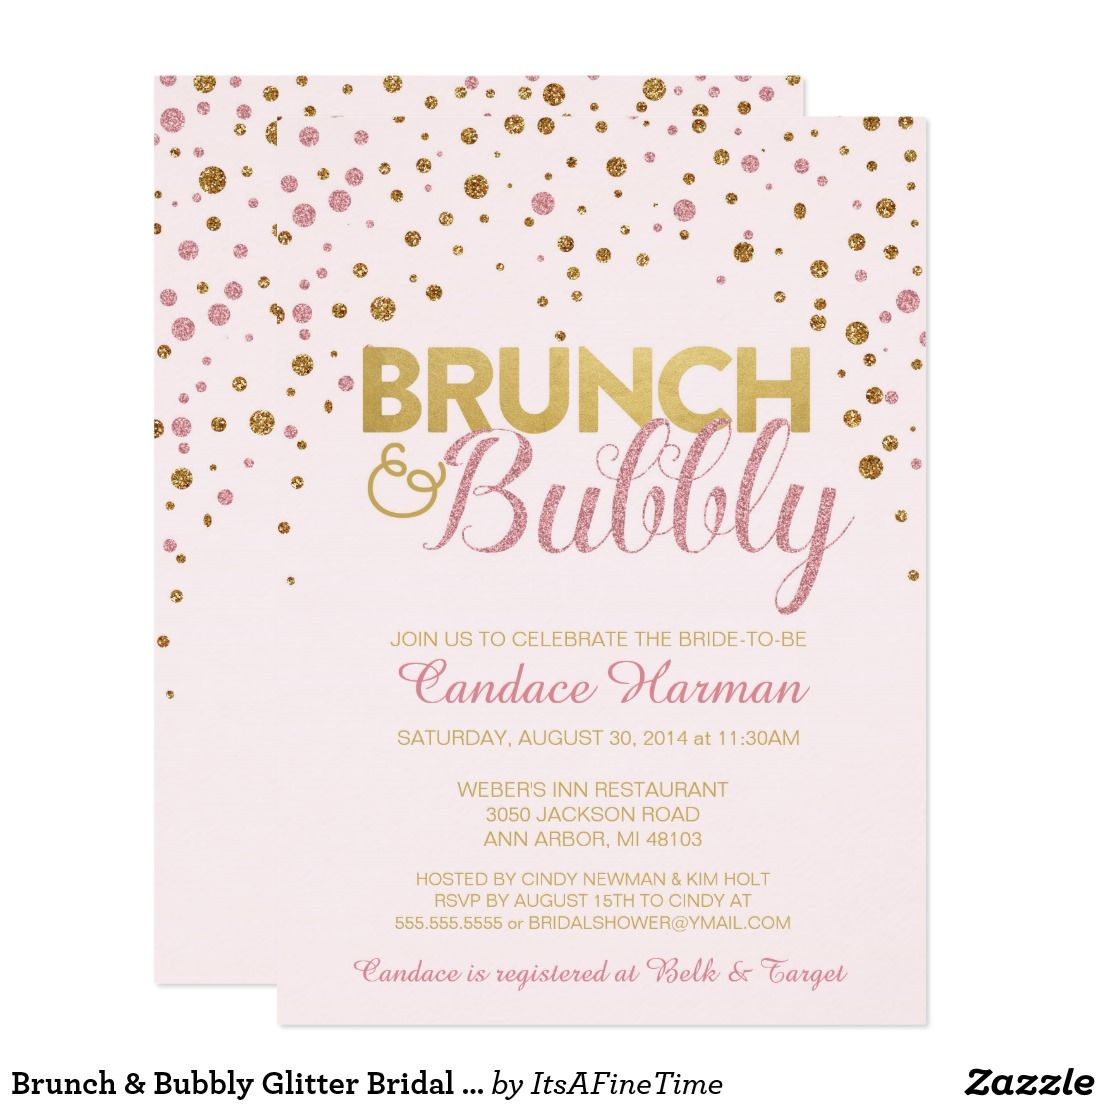 Brunch bubbly glitter bridal shower invitation bridal showers brunch bubbly glitter bridal shower invitation filmwisefo